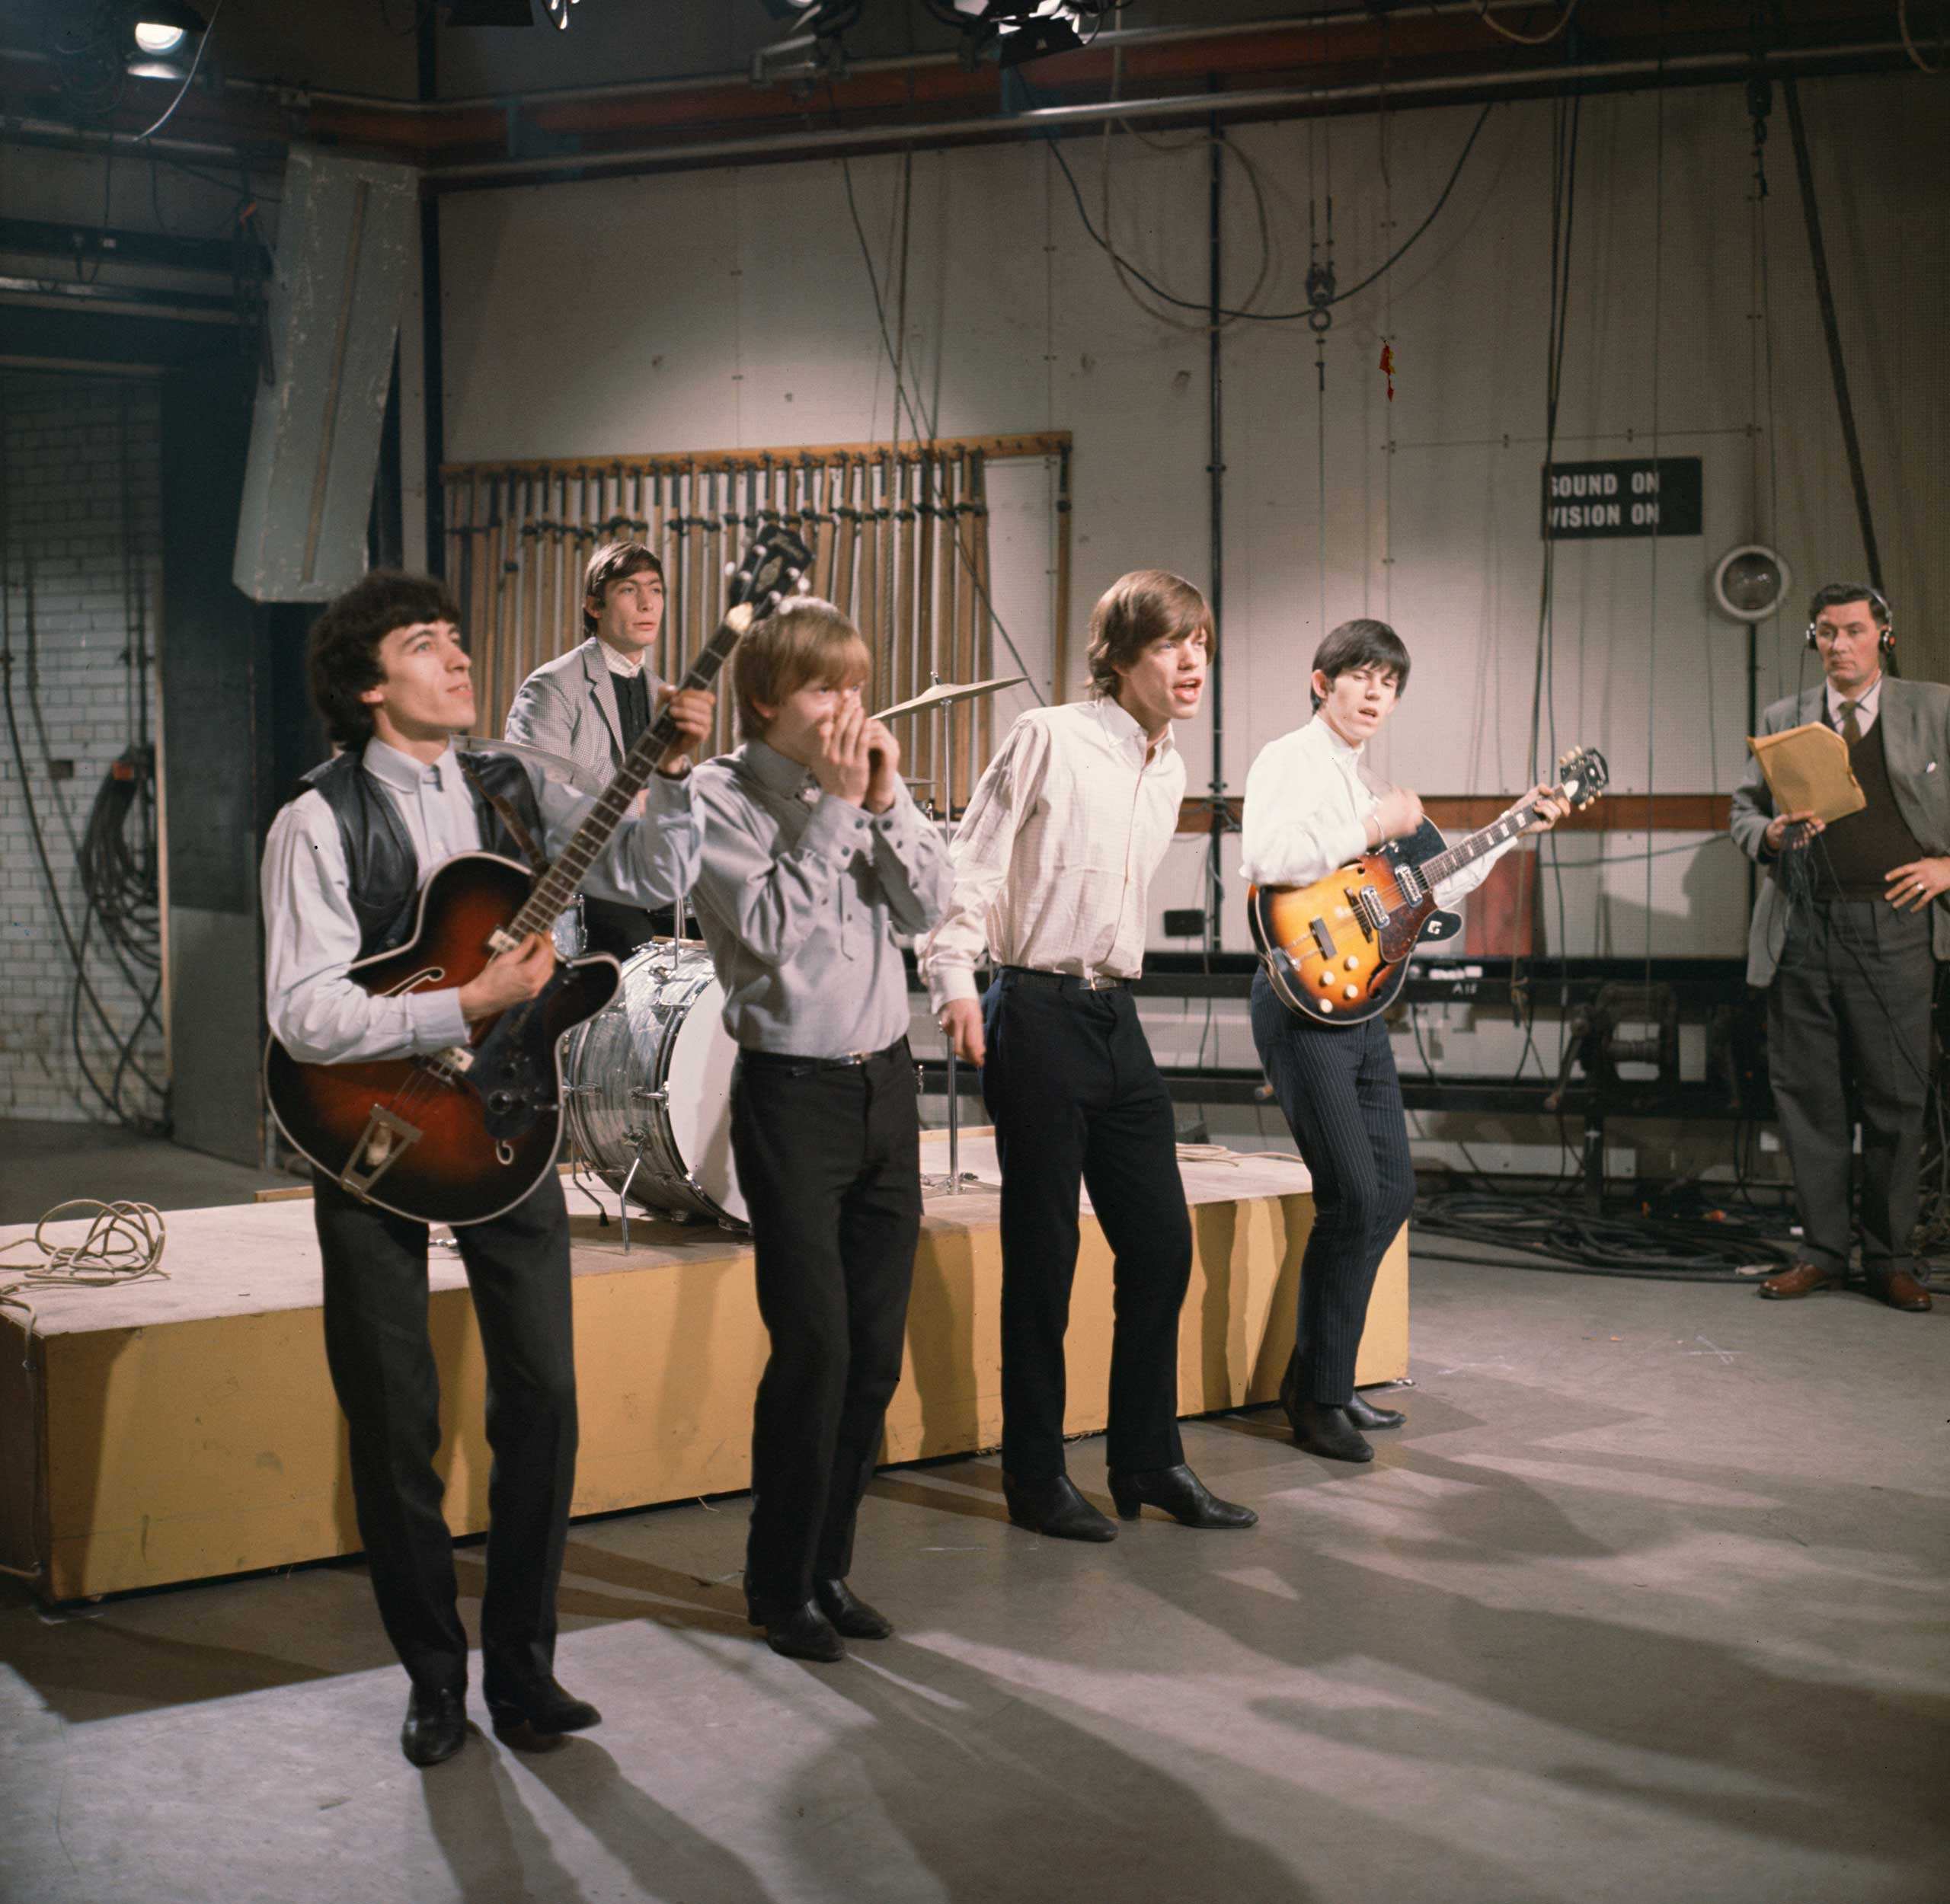 <b>The Rolling Stones</b>                                   Photographed for TV Times in 1965, at the ITV studios in London. This was the year of their huge hit 'Satisfaction'.